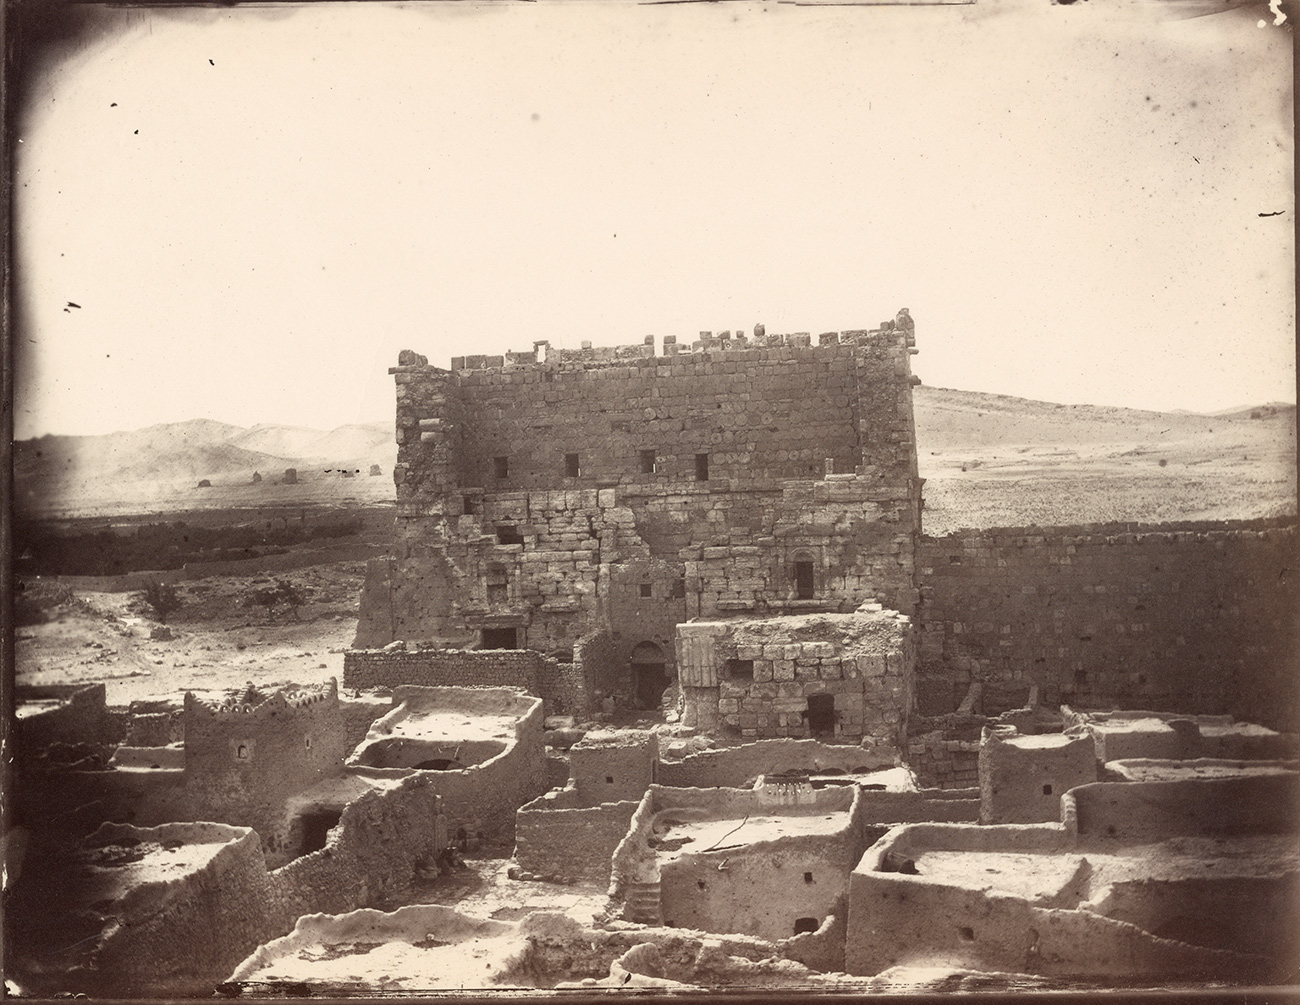 Temple of Bel, 1864, Louis Vignes. Albumen print. 8.8 x 11.4 in. The Getty Research Institute, 2015.R.15